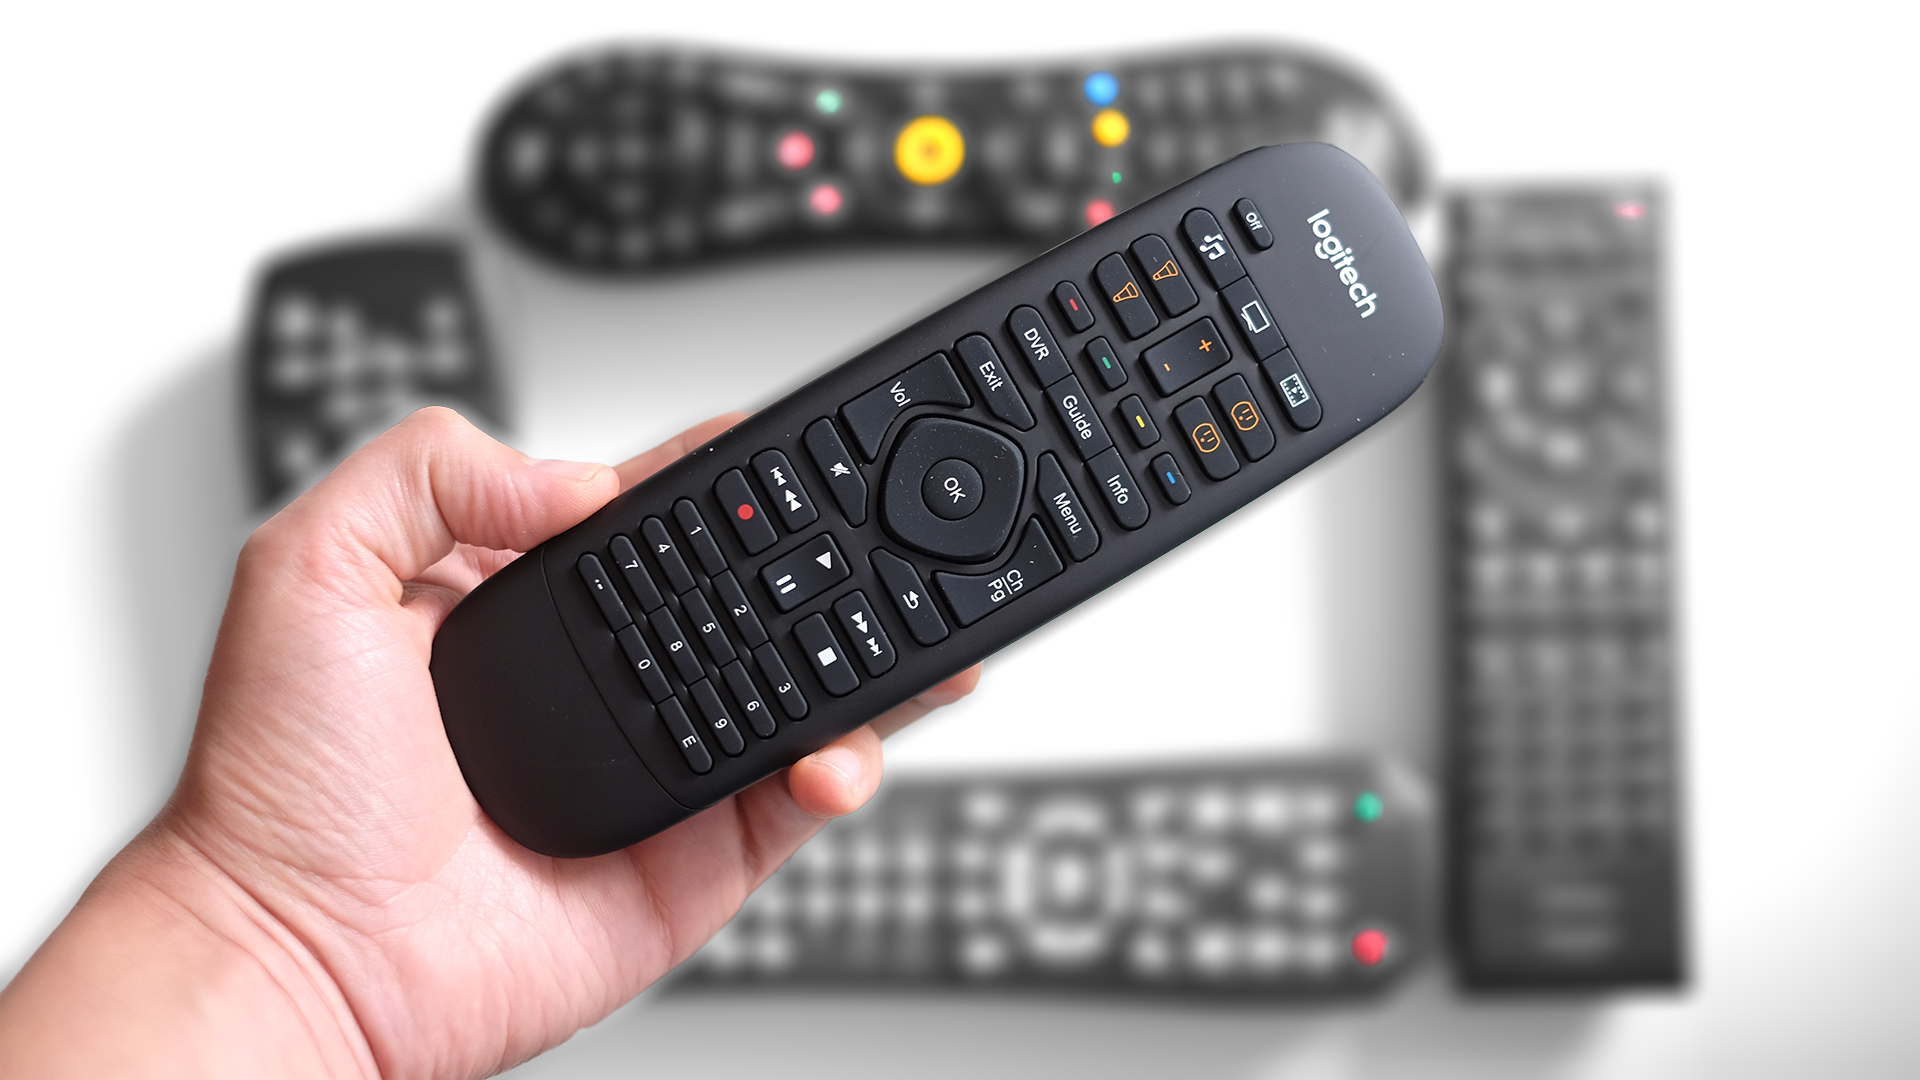 Best universal remotes 2019: From entry-level clickers to